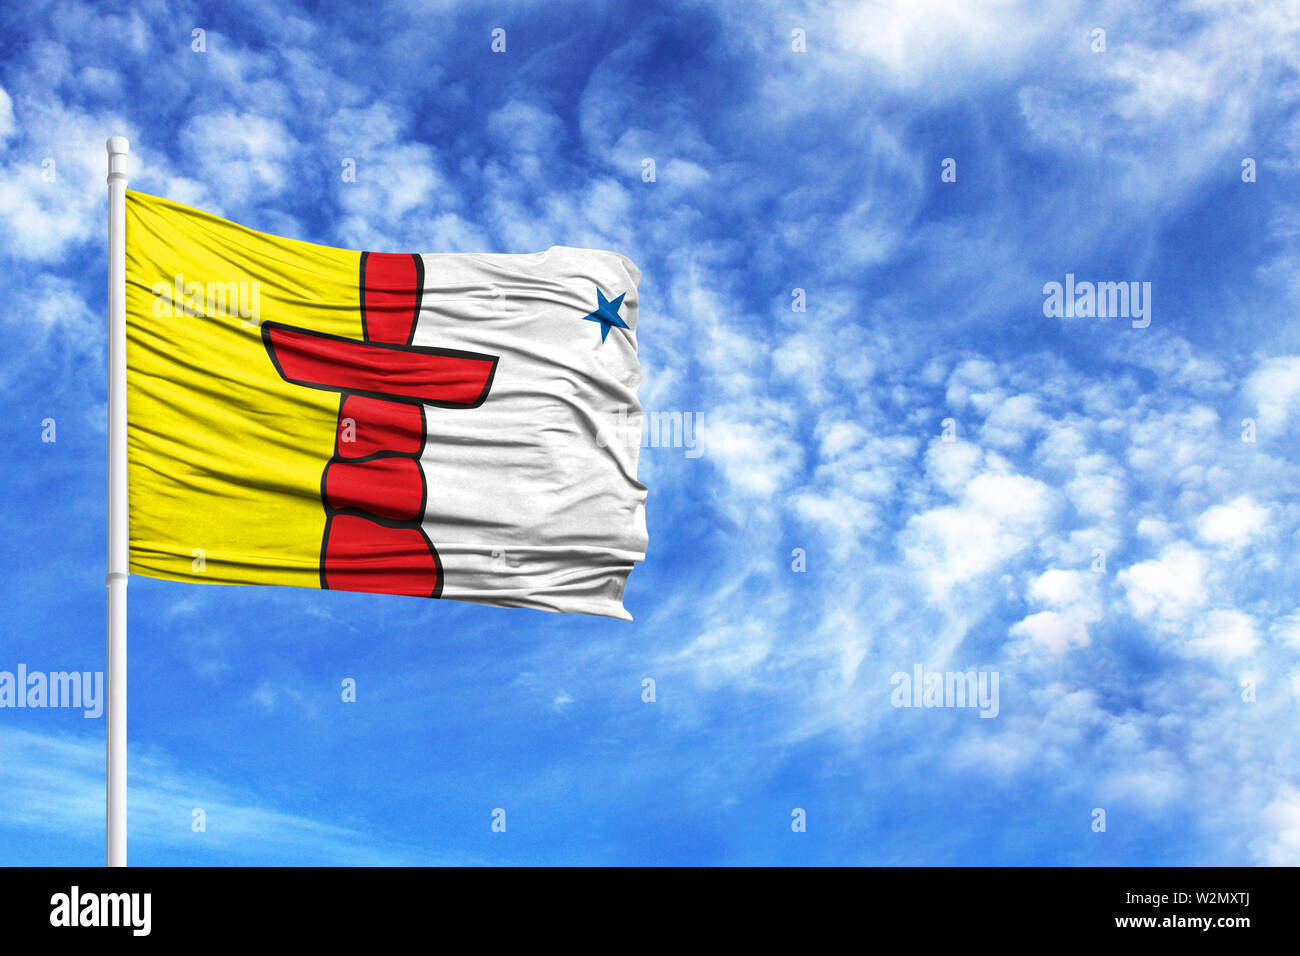 National flag of Nunavut on a flagpole in front of blue sky - Stock Image